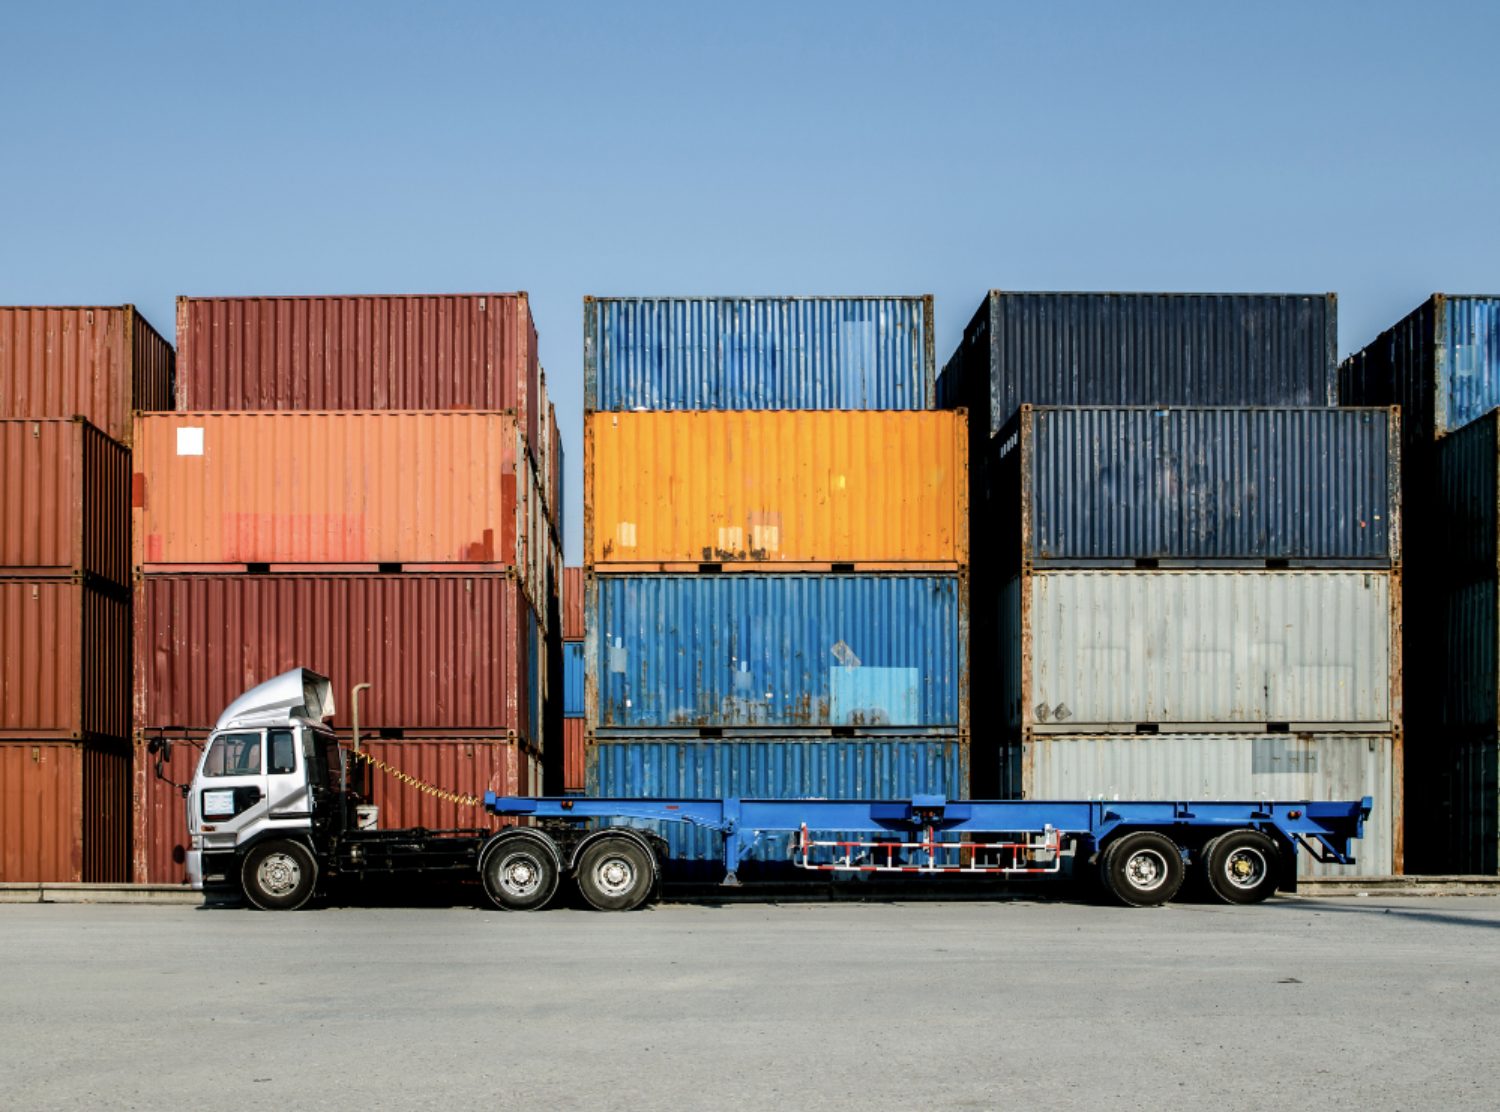 Truck in container yard